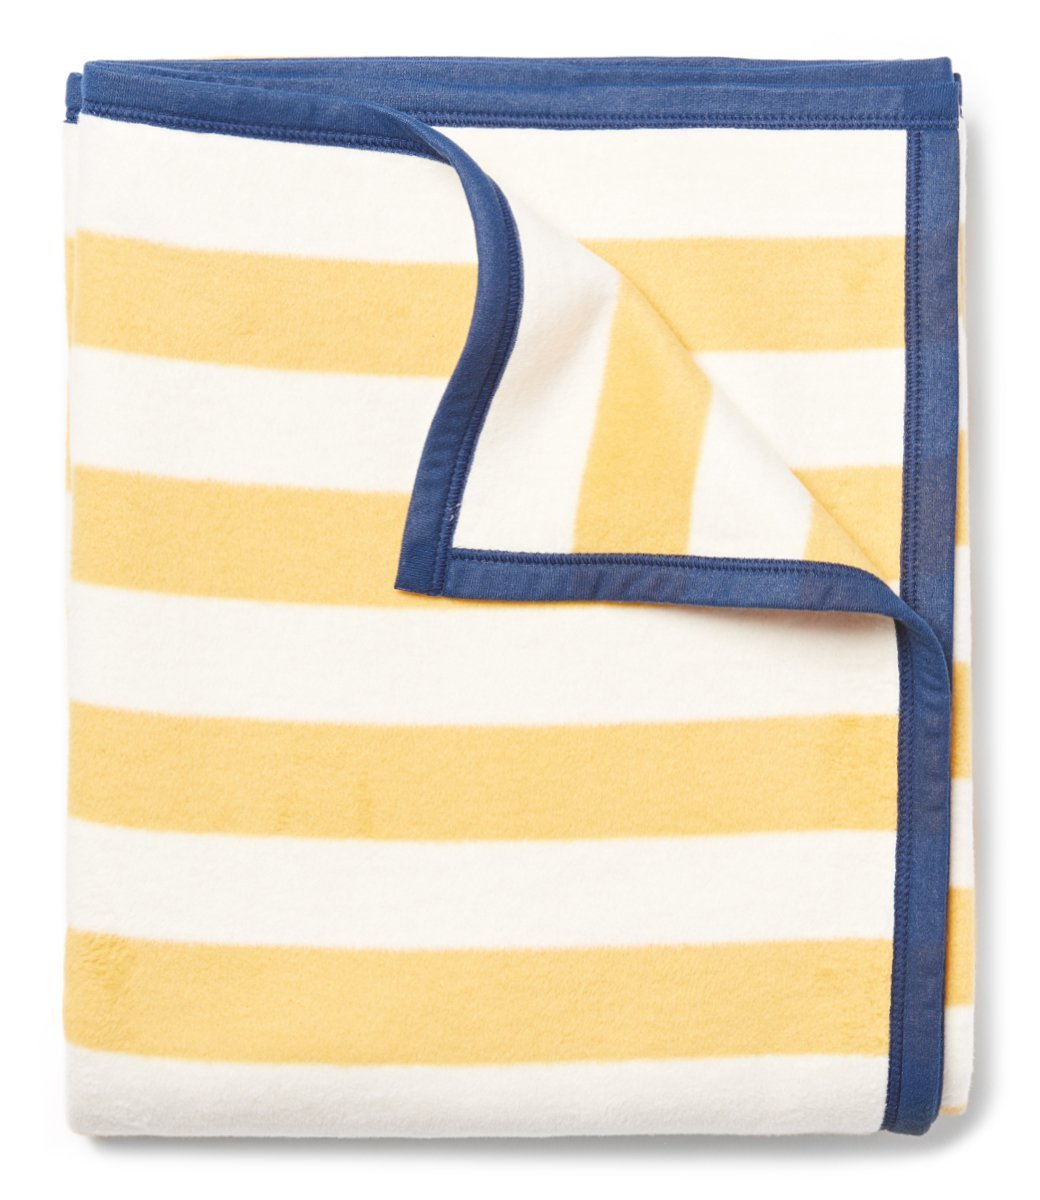 CHAPPY WRAP BLANKET - CLASSIC YELLOW STRIPE